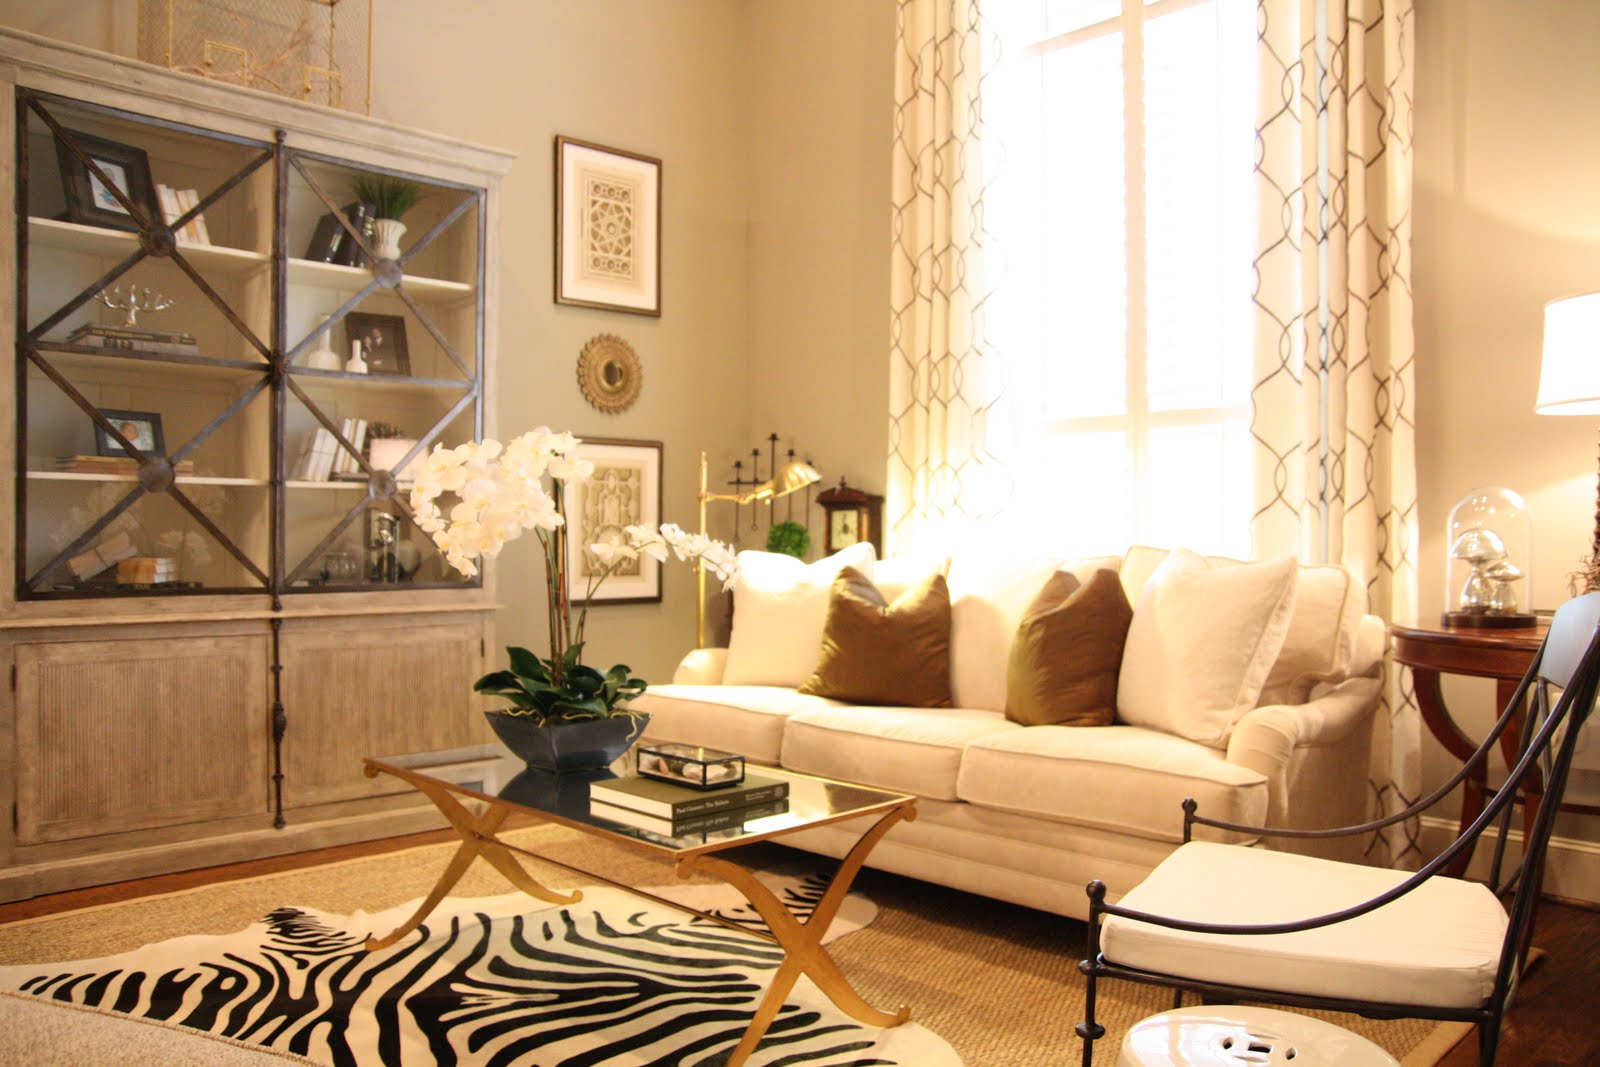 Live Beautifully: Living Room Before & After